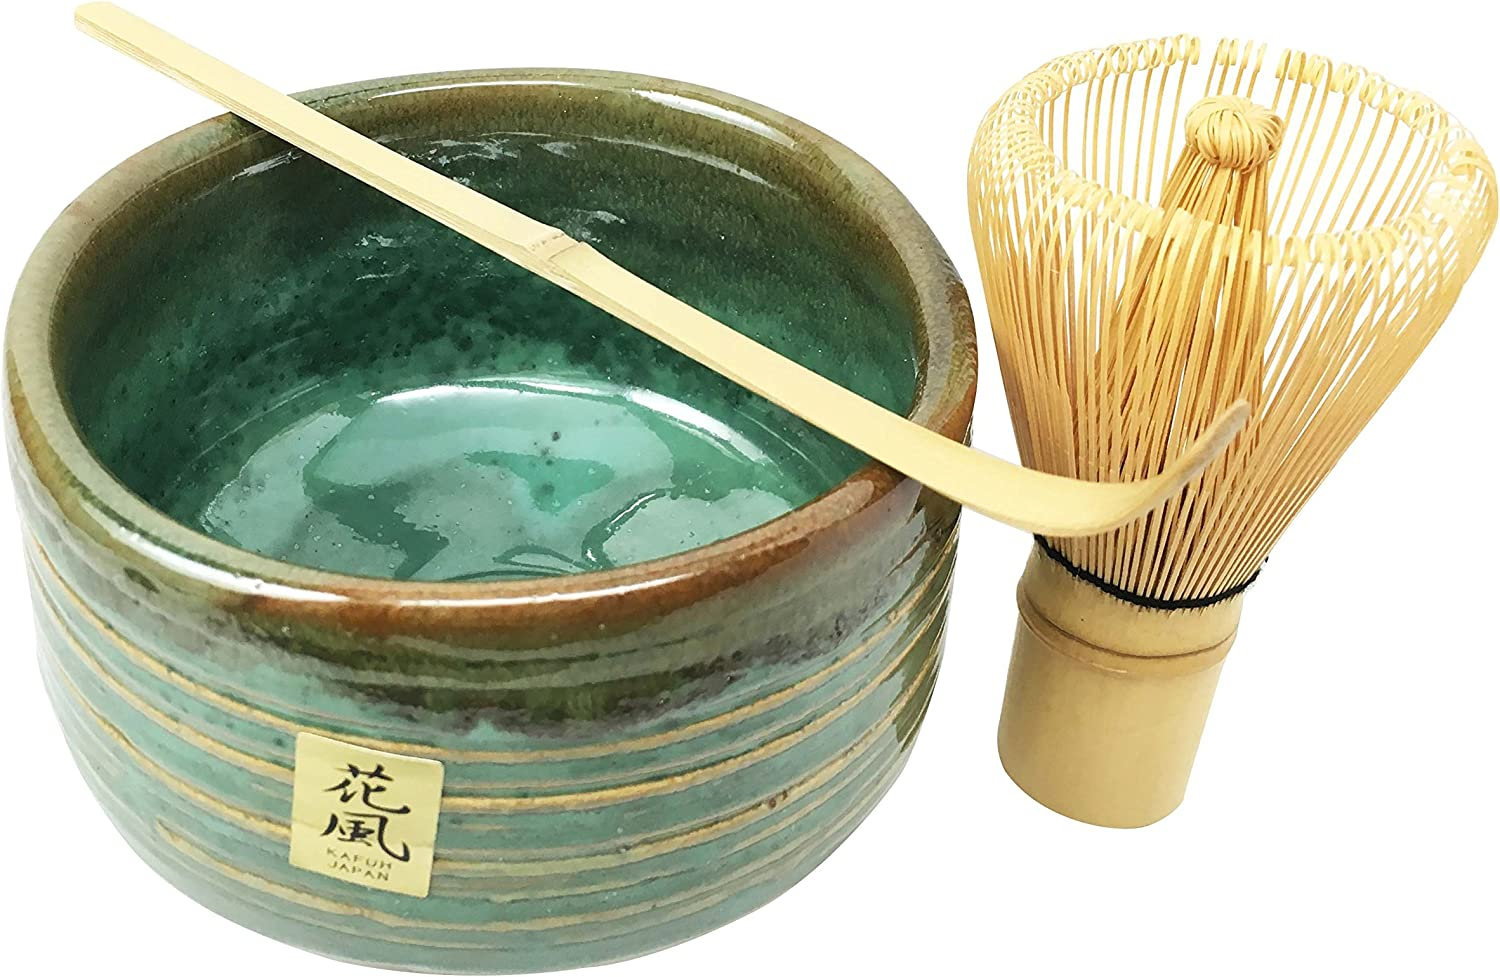 Amazon Com Japanese Traditional Tea Ceremony Matcha Green Tea Set With Bowl Wooden Whisk And Scoop Aesthetic And Quality Put Together Into A Beautiful Gift Set Box For Weddings Gifts Home Decorative